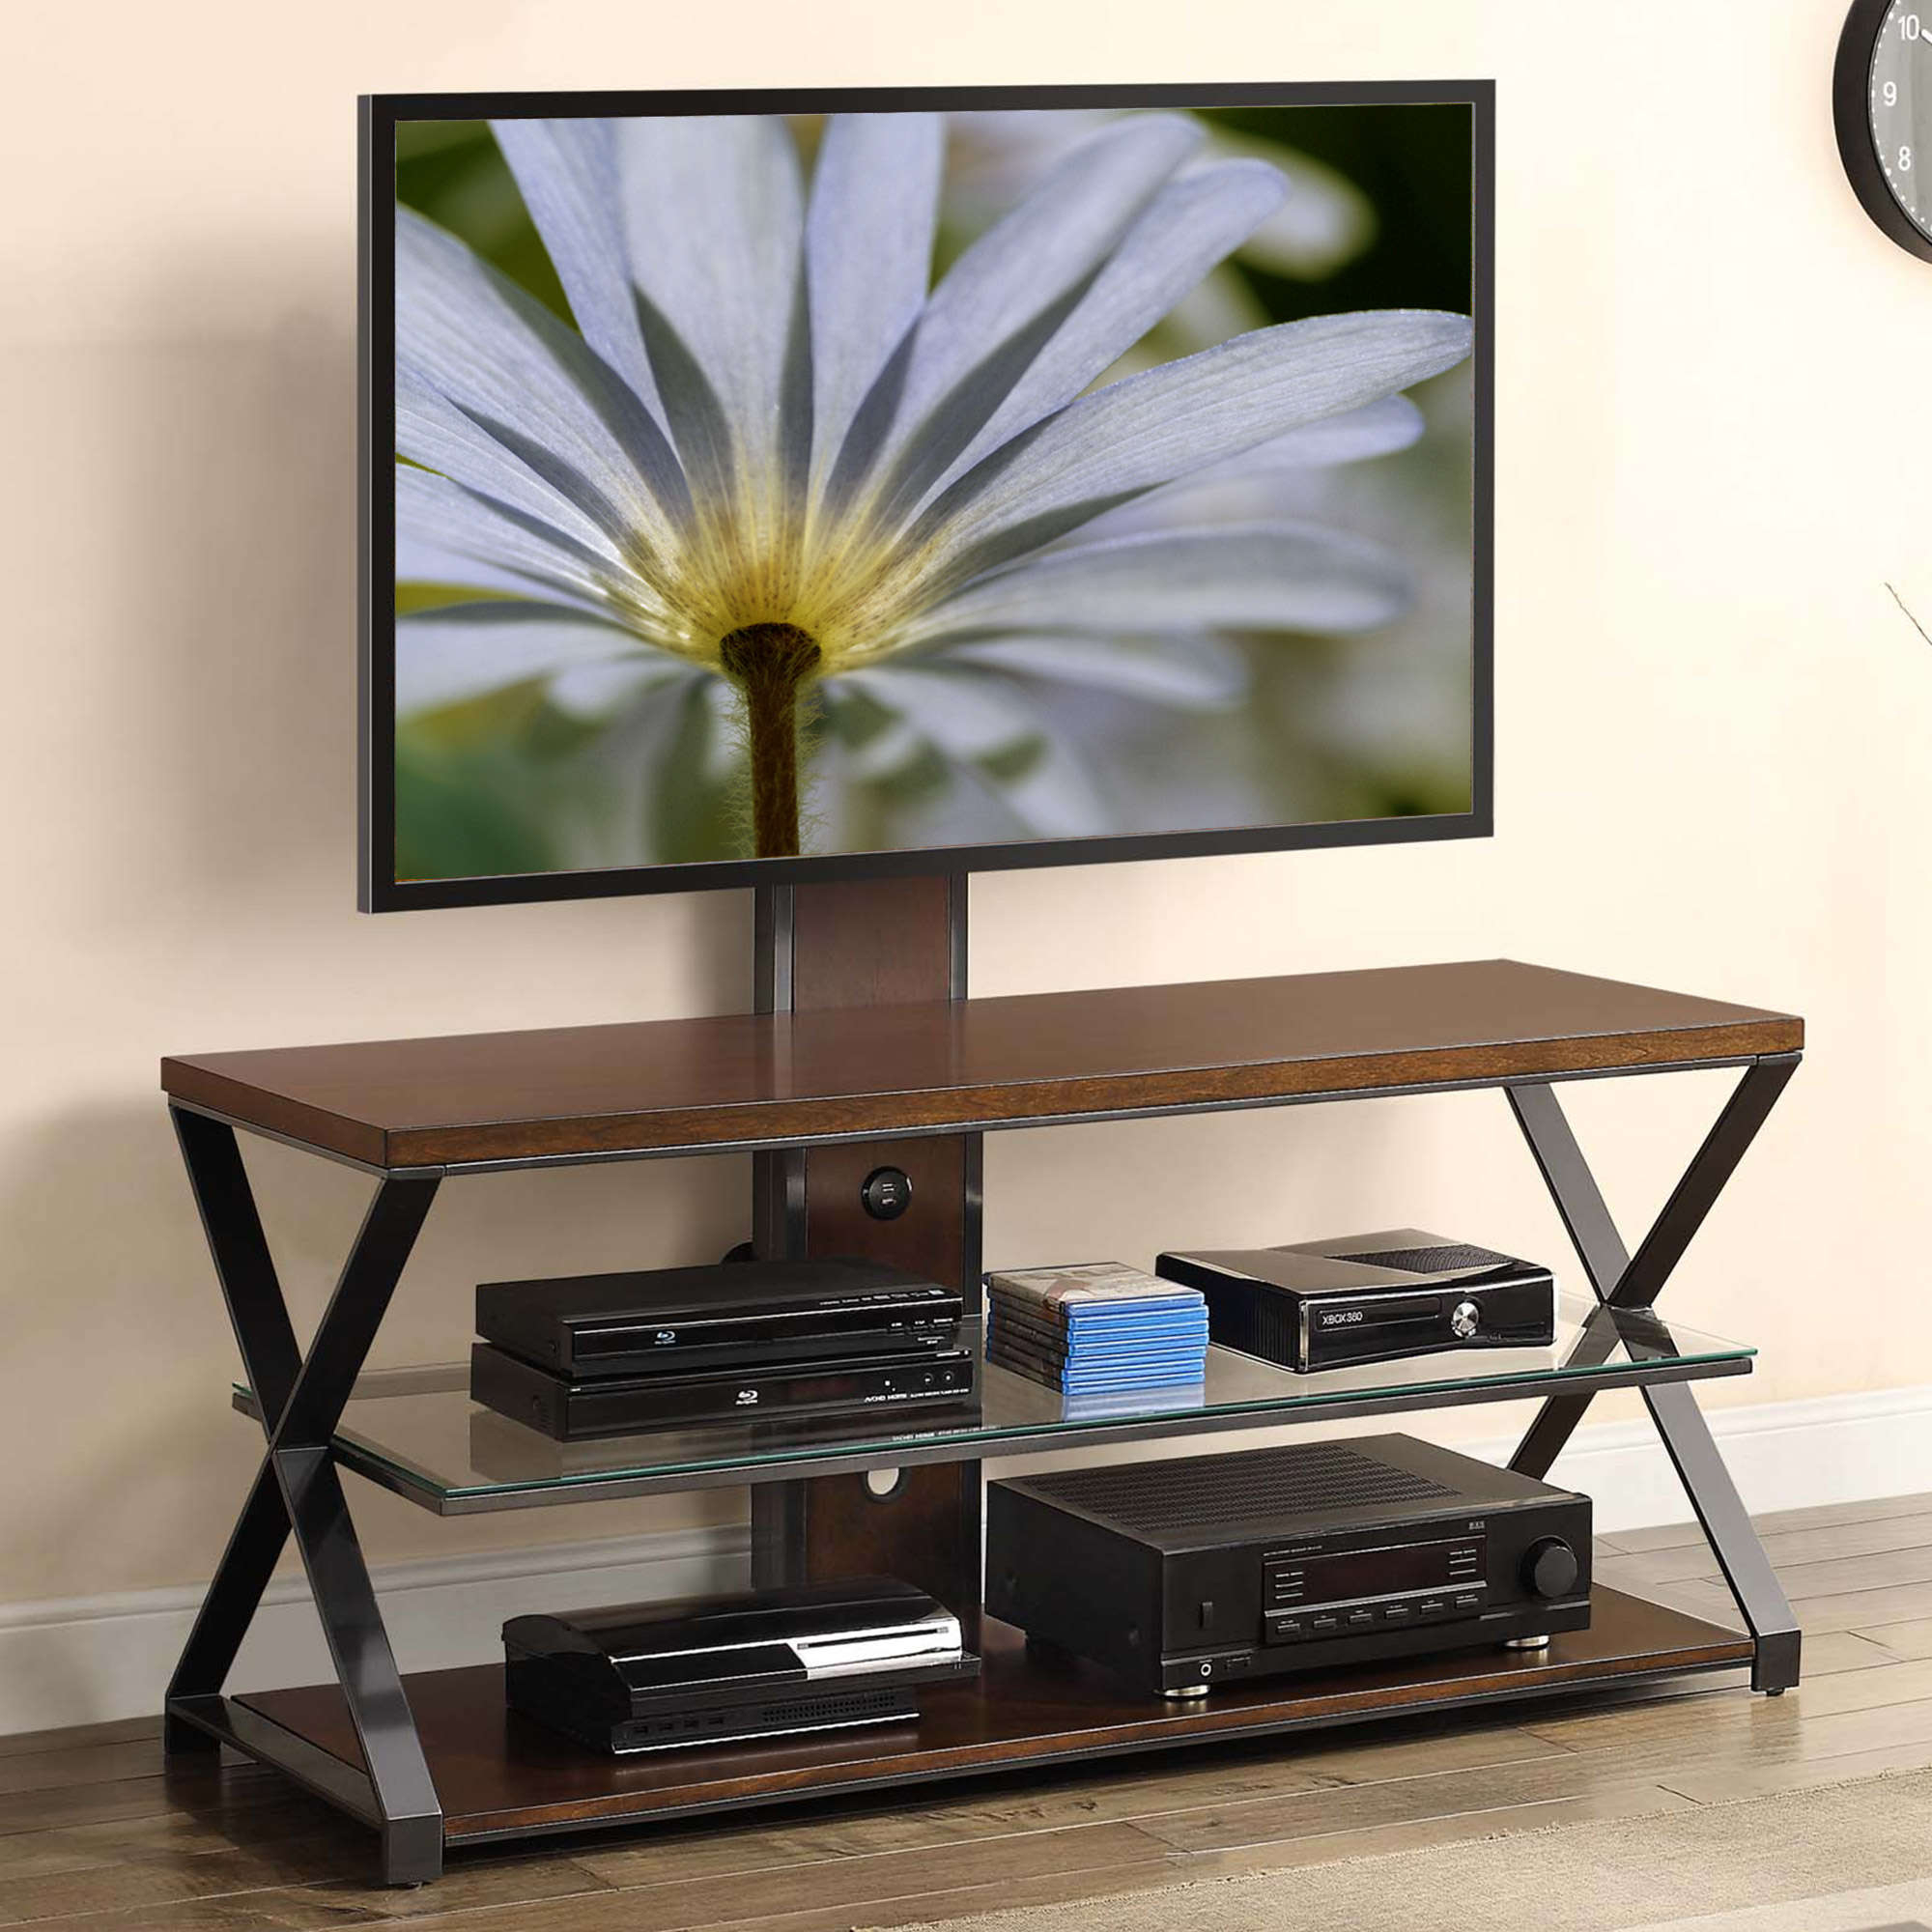 """Jaxon 3 In 1 Cognac Tv Stand For Tvs Up To 70"""" – Walmart With Jaxon 76 Inch Plasma Console Tables (View 3 of 30)"""